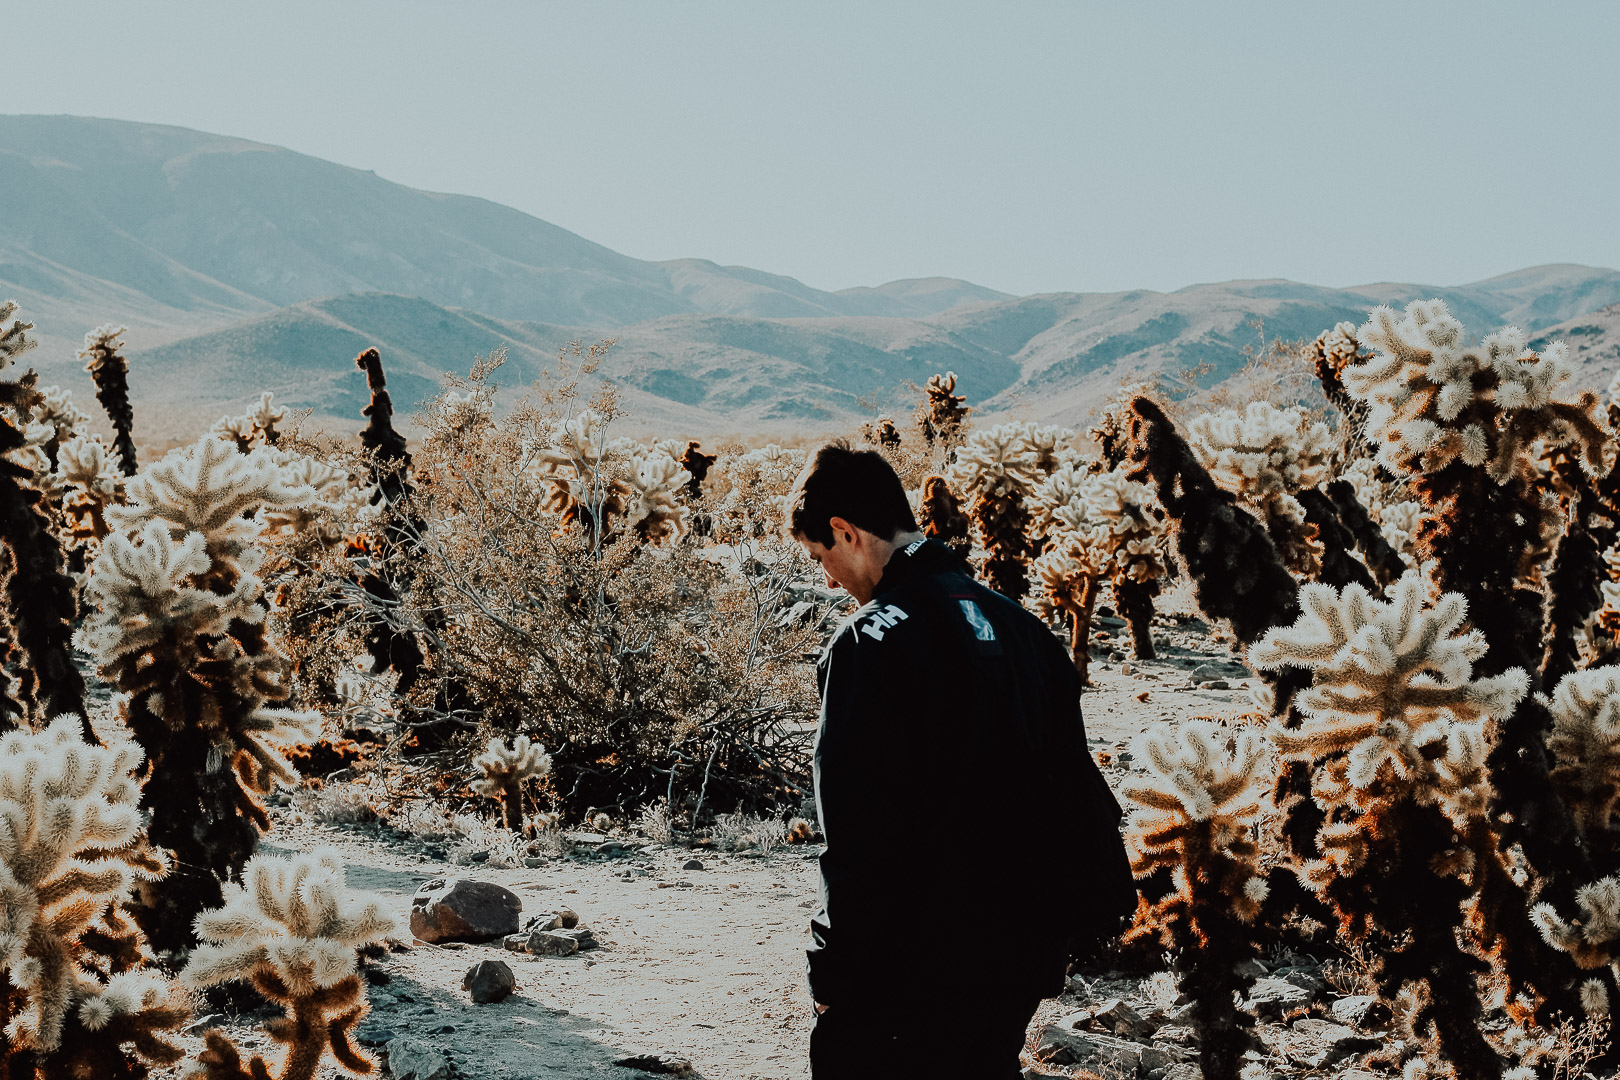 Earlier this year, - Nick & I went to explore Joshua Tree National Park. Even though its only a few hours away, it was my first time going to the park-- and I really loved it! Something about Joshua Tree is so peaceful and gives you a sense of contentment.